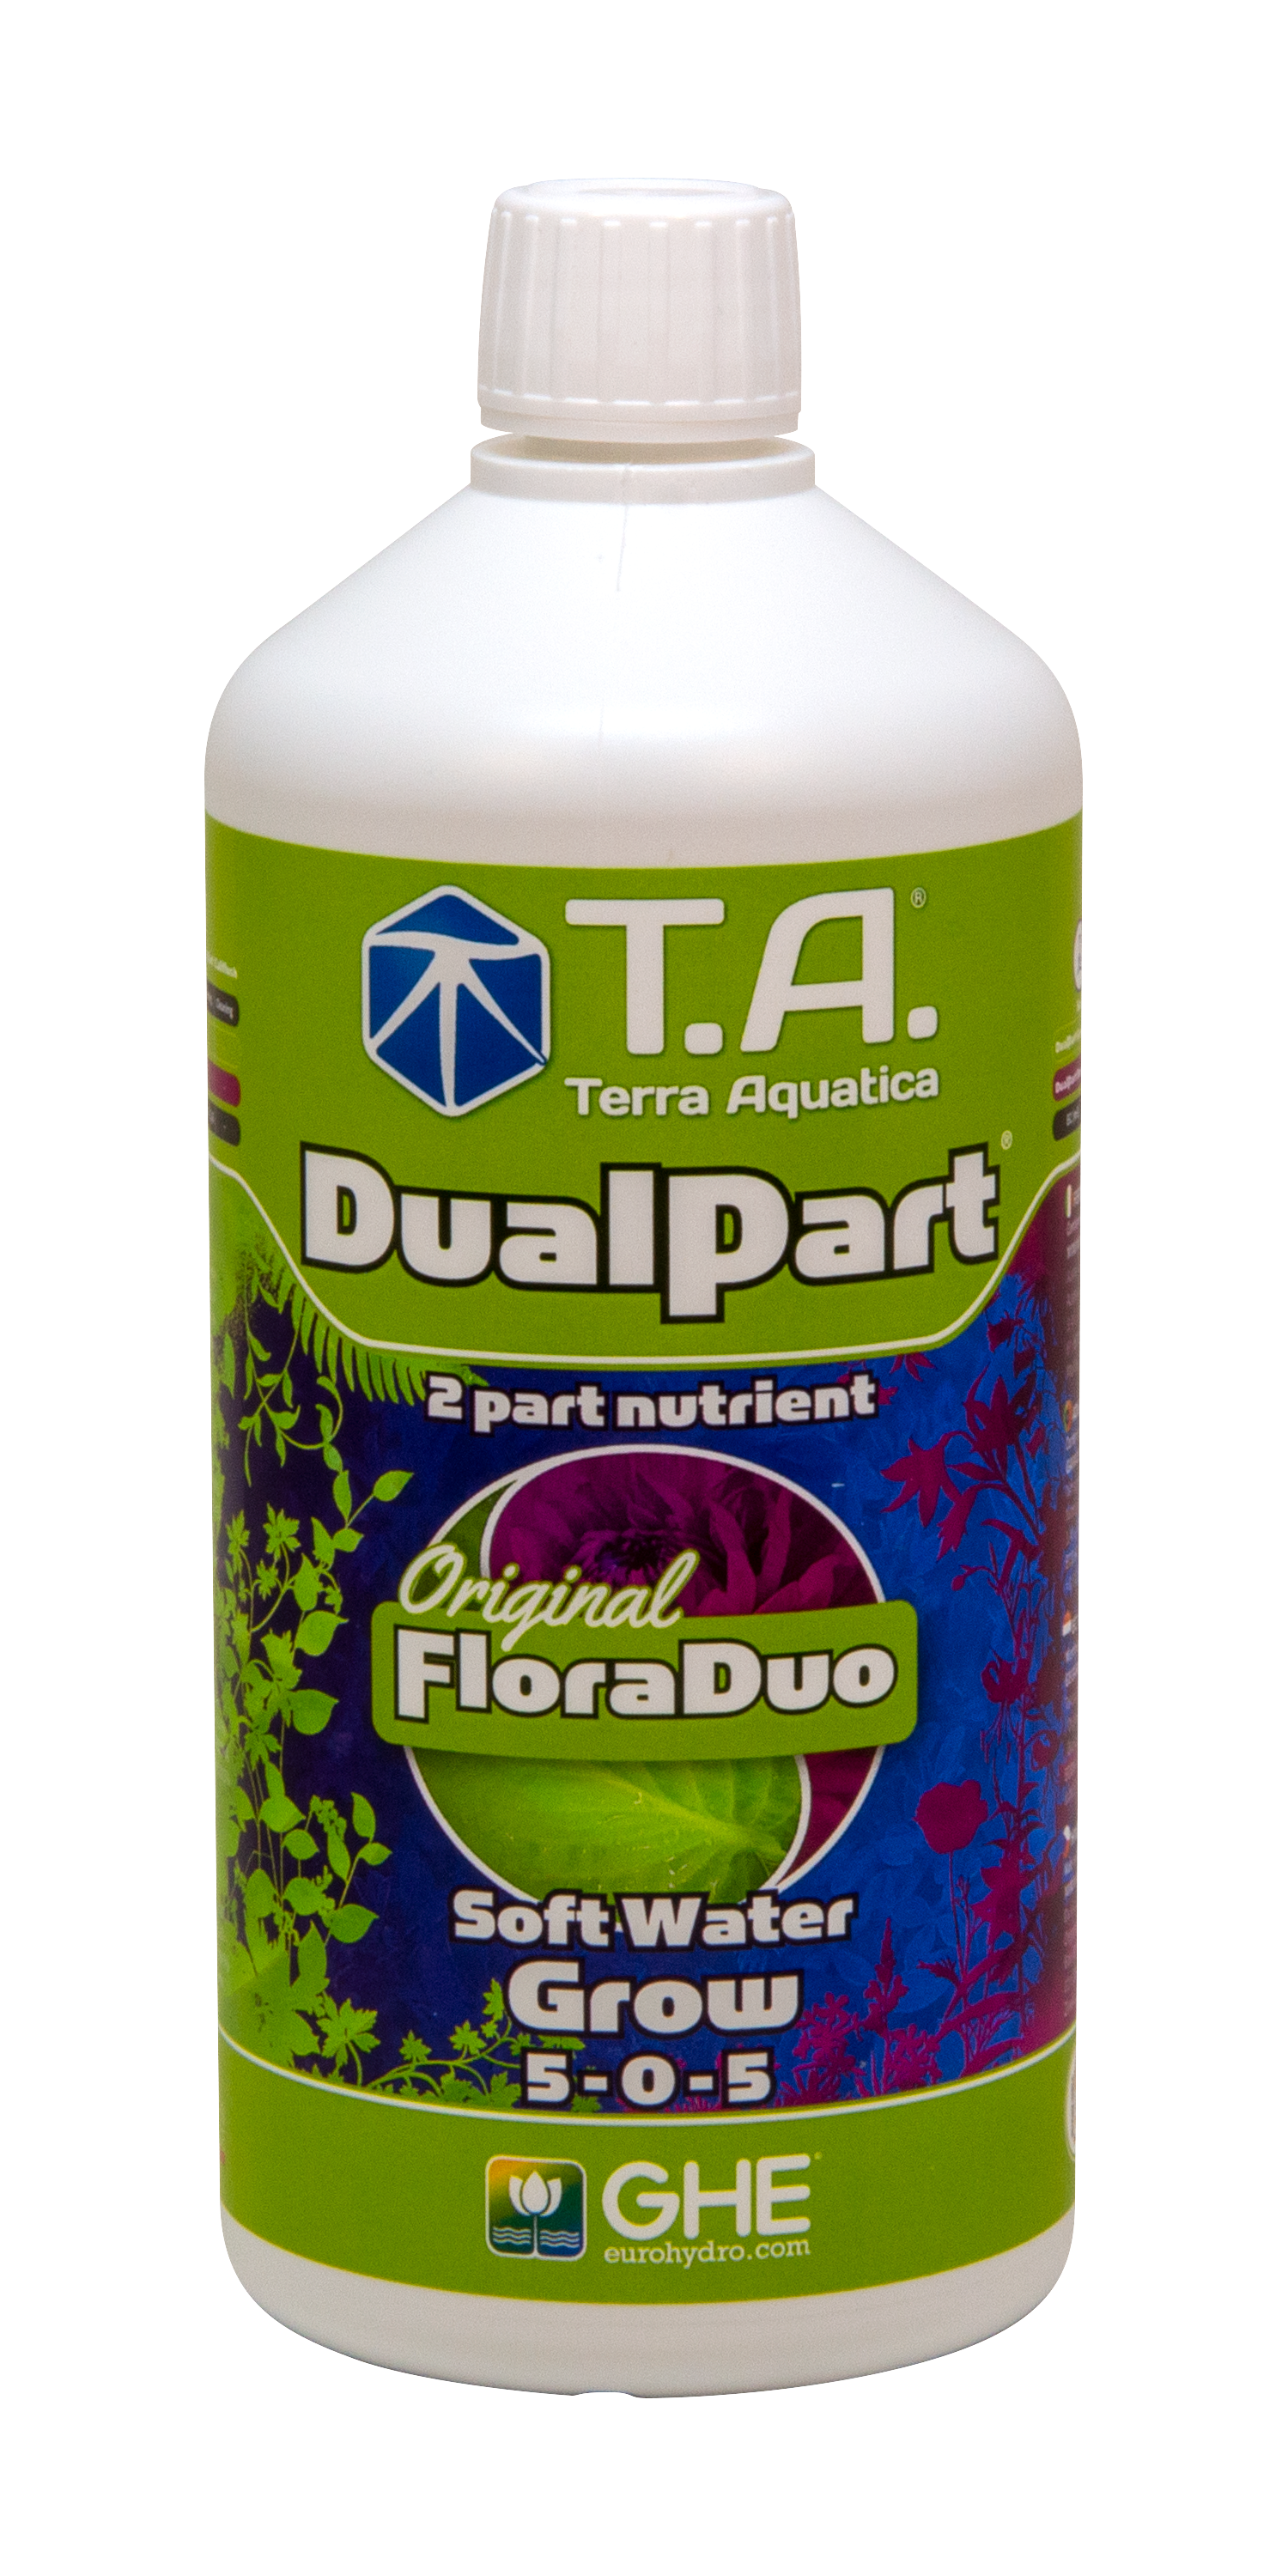 T.A. DualPart Grow Soft Water (FloraDuo) 500ml